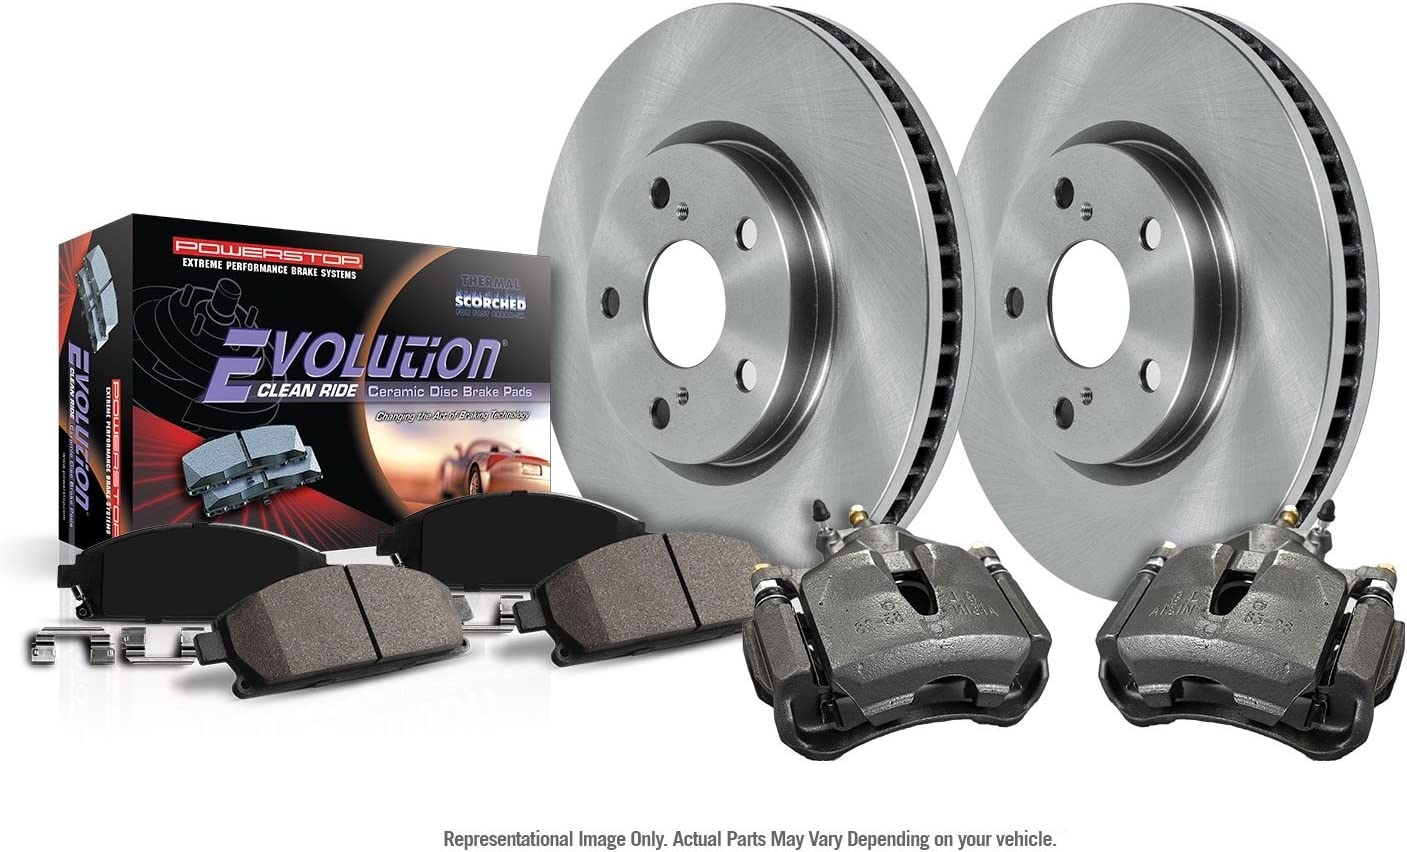 Power Stop KCOE5969 Front Stock Replacement Brake Kit with OE Calipers